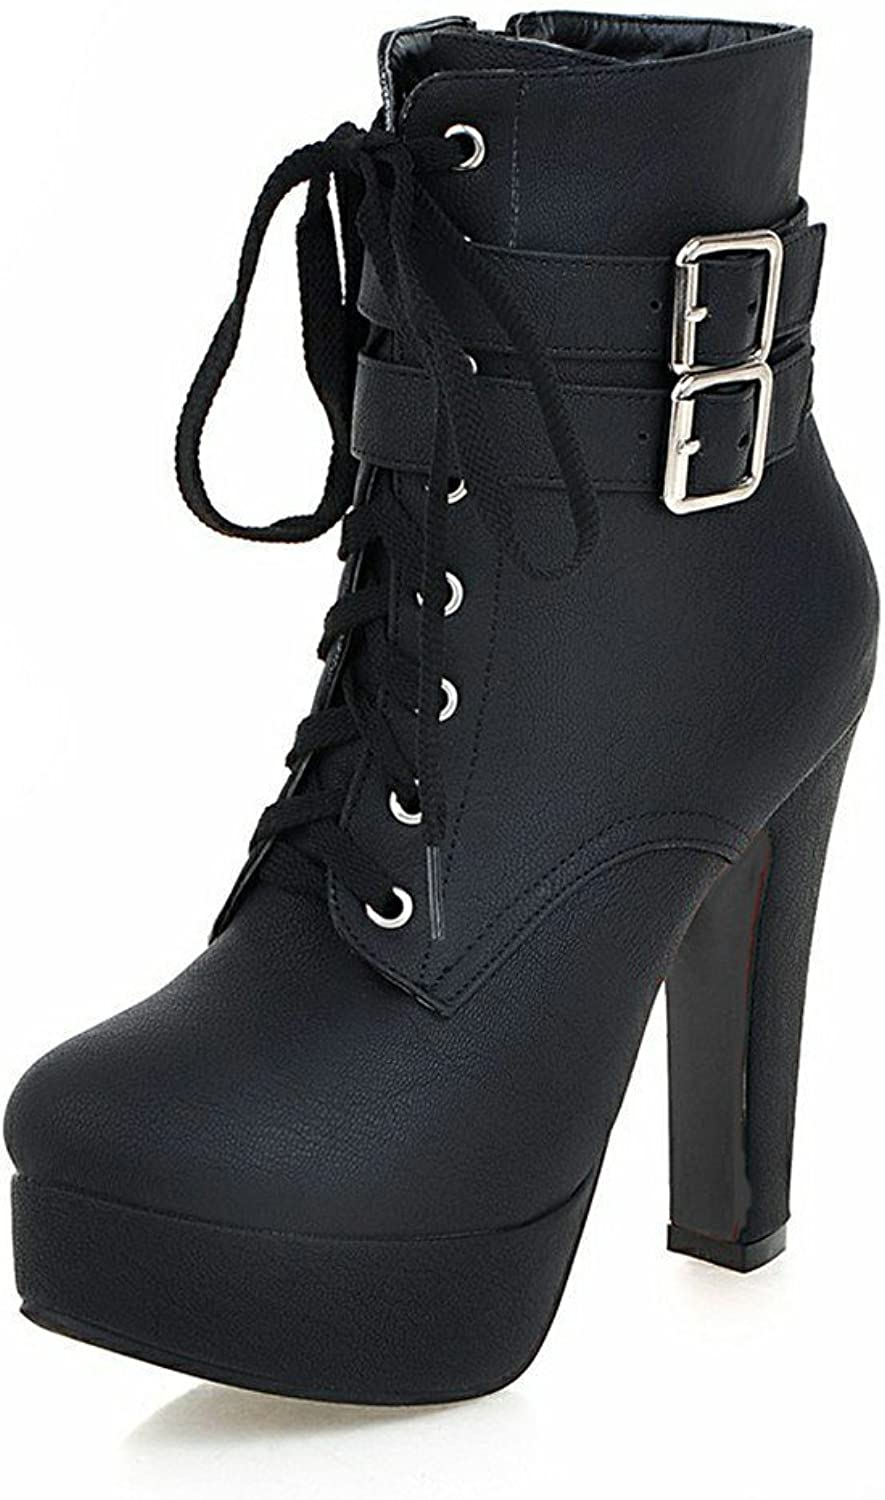 KingRover Women's Fashion Lace Up Round Toe High Heels Martens Boots Ankle Boots Black